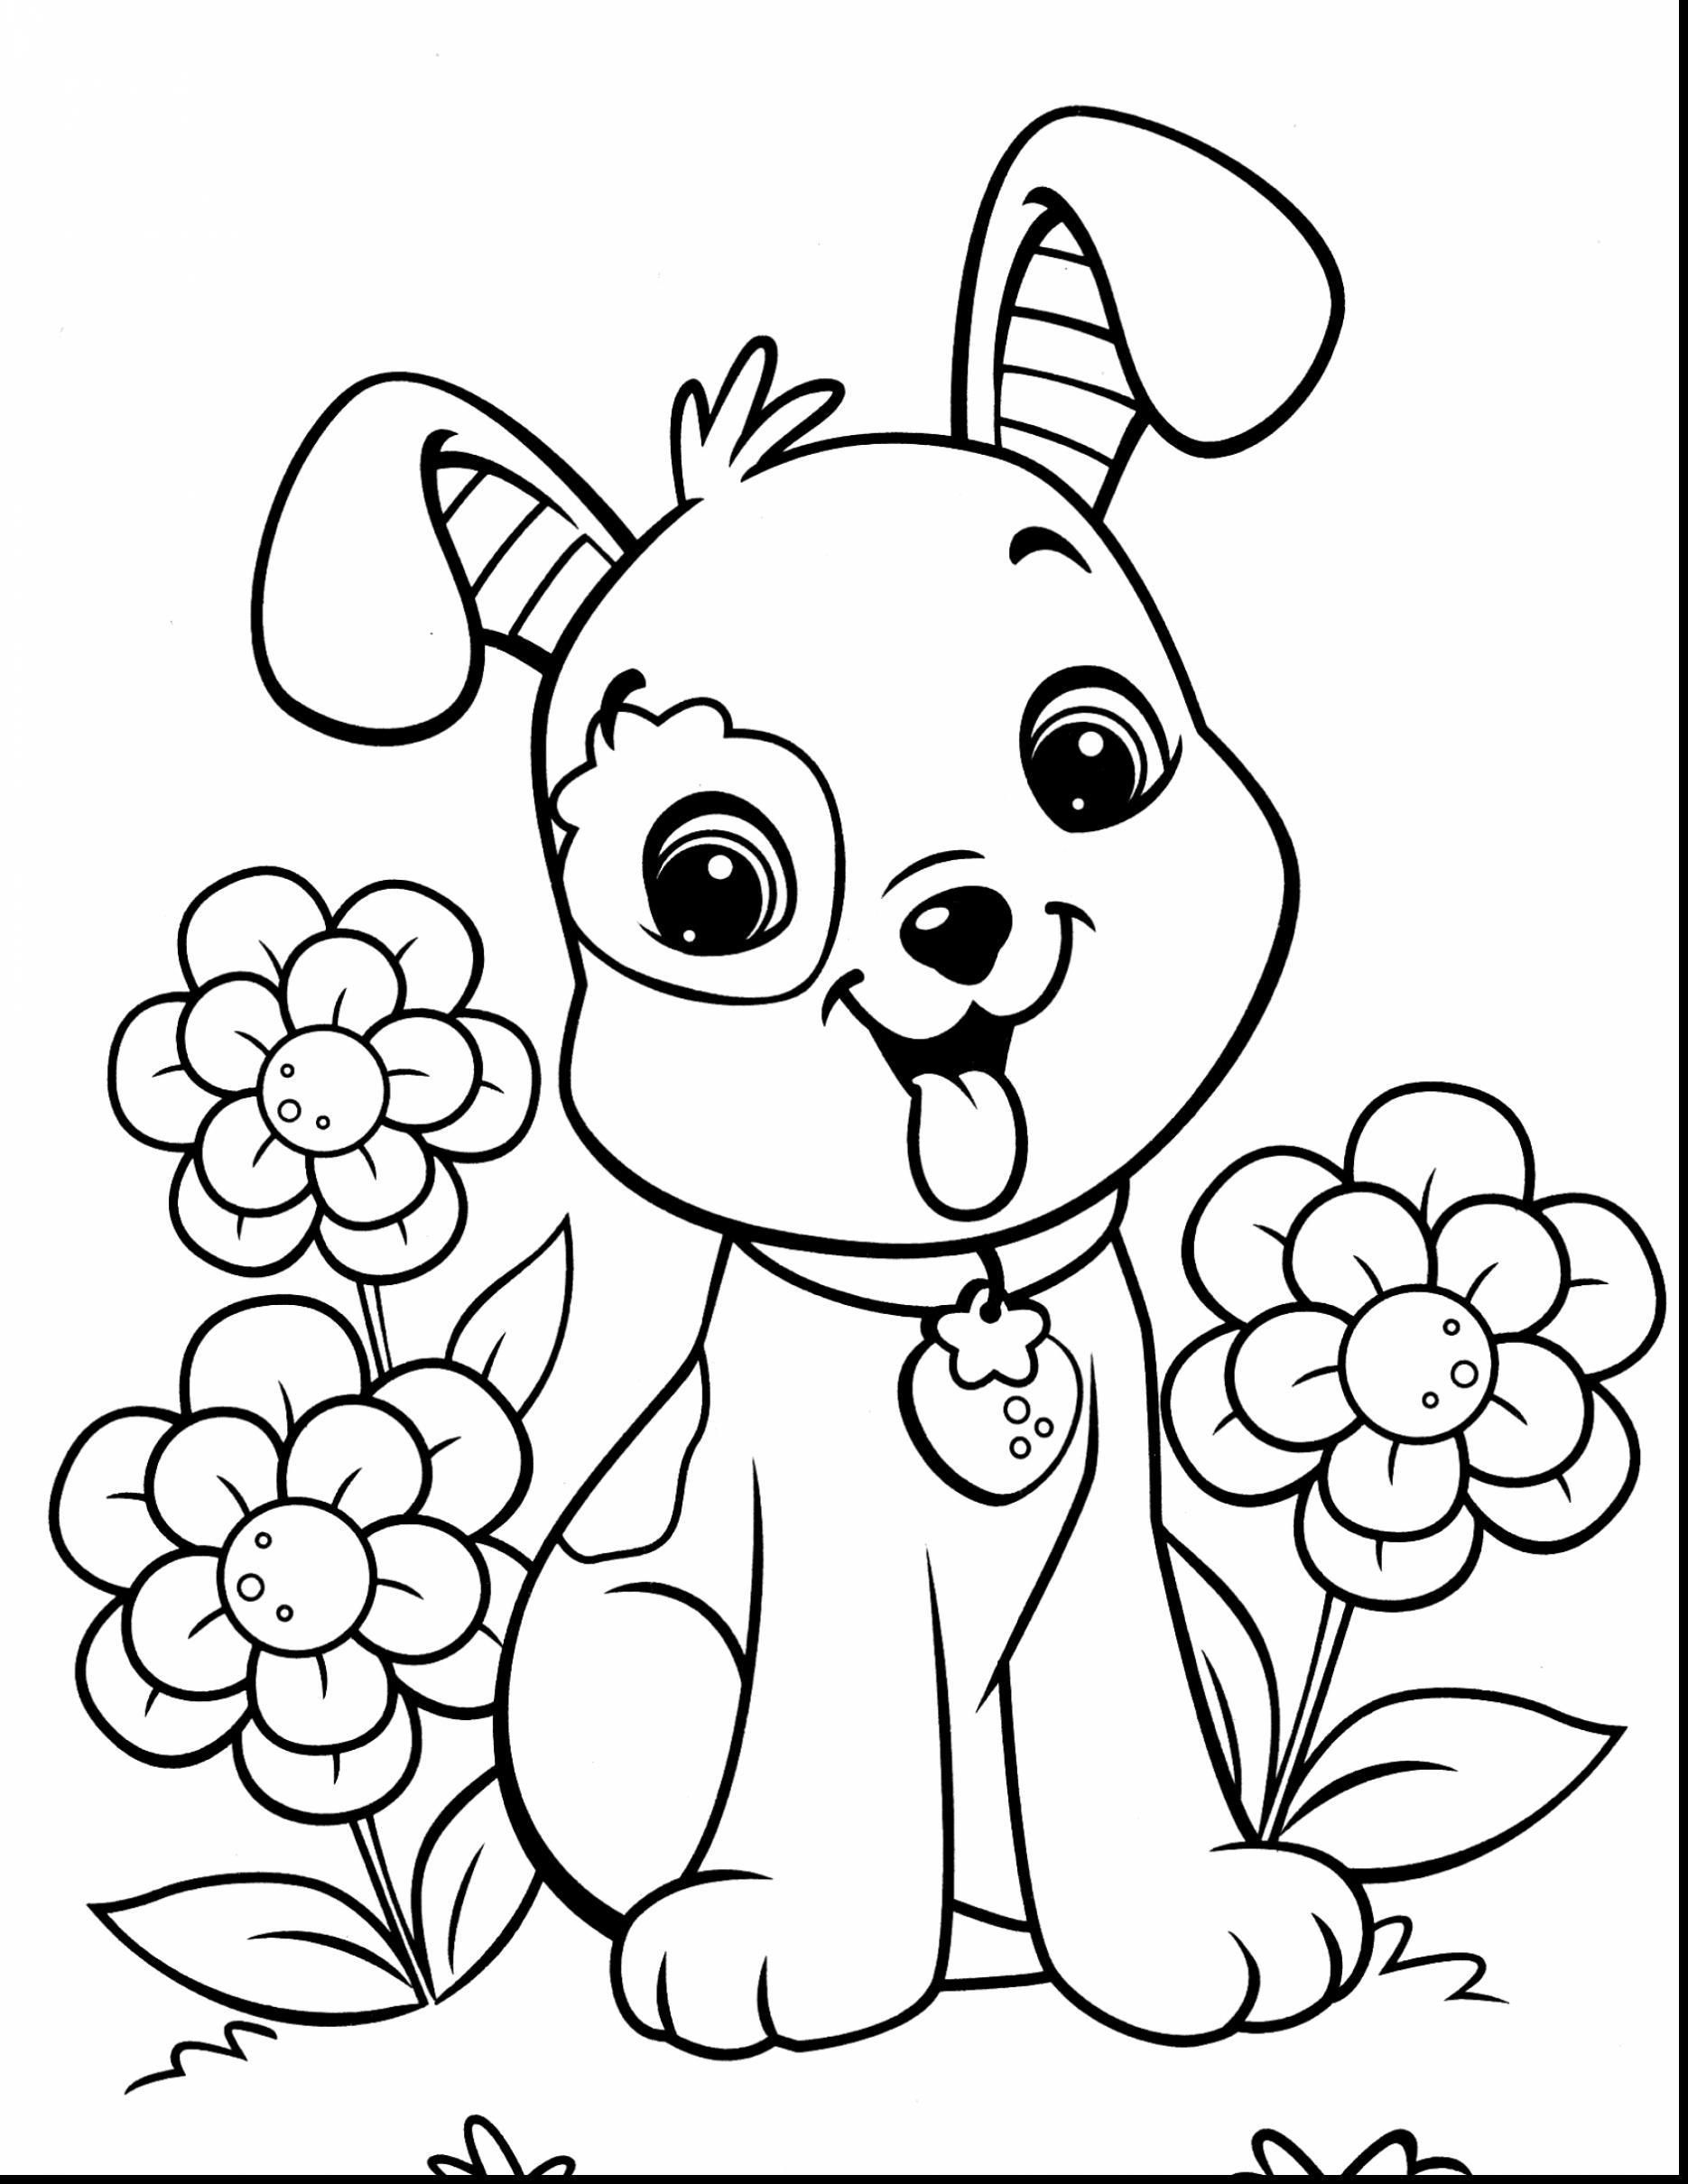 1870x2420 Simple Dog Coloring Pages Simple Colorings